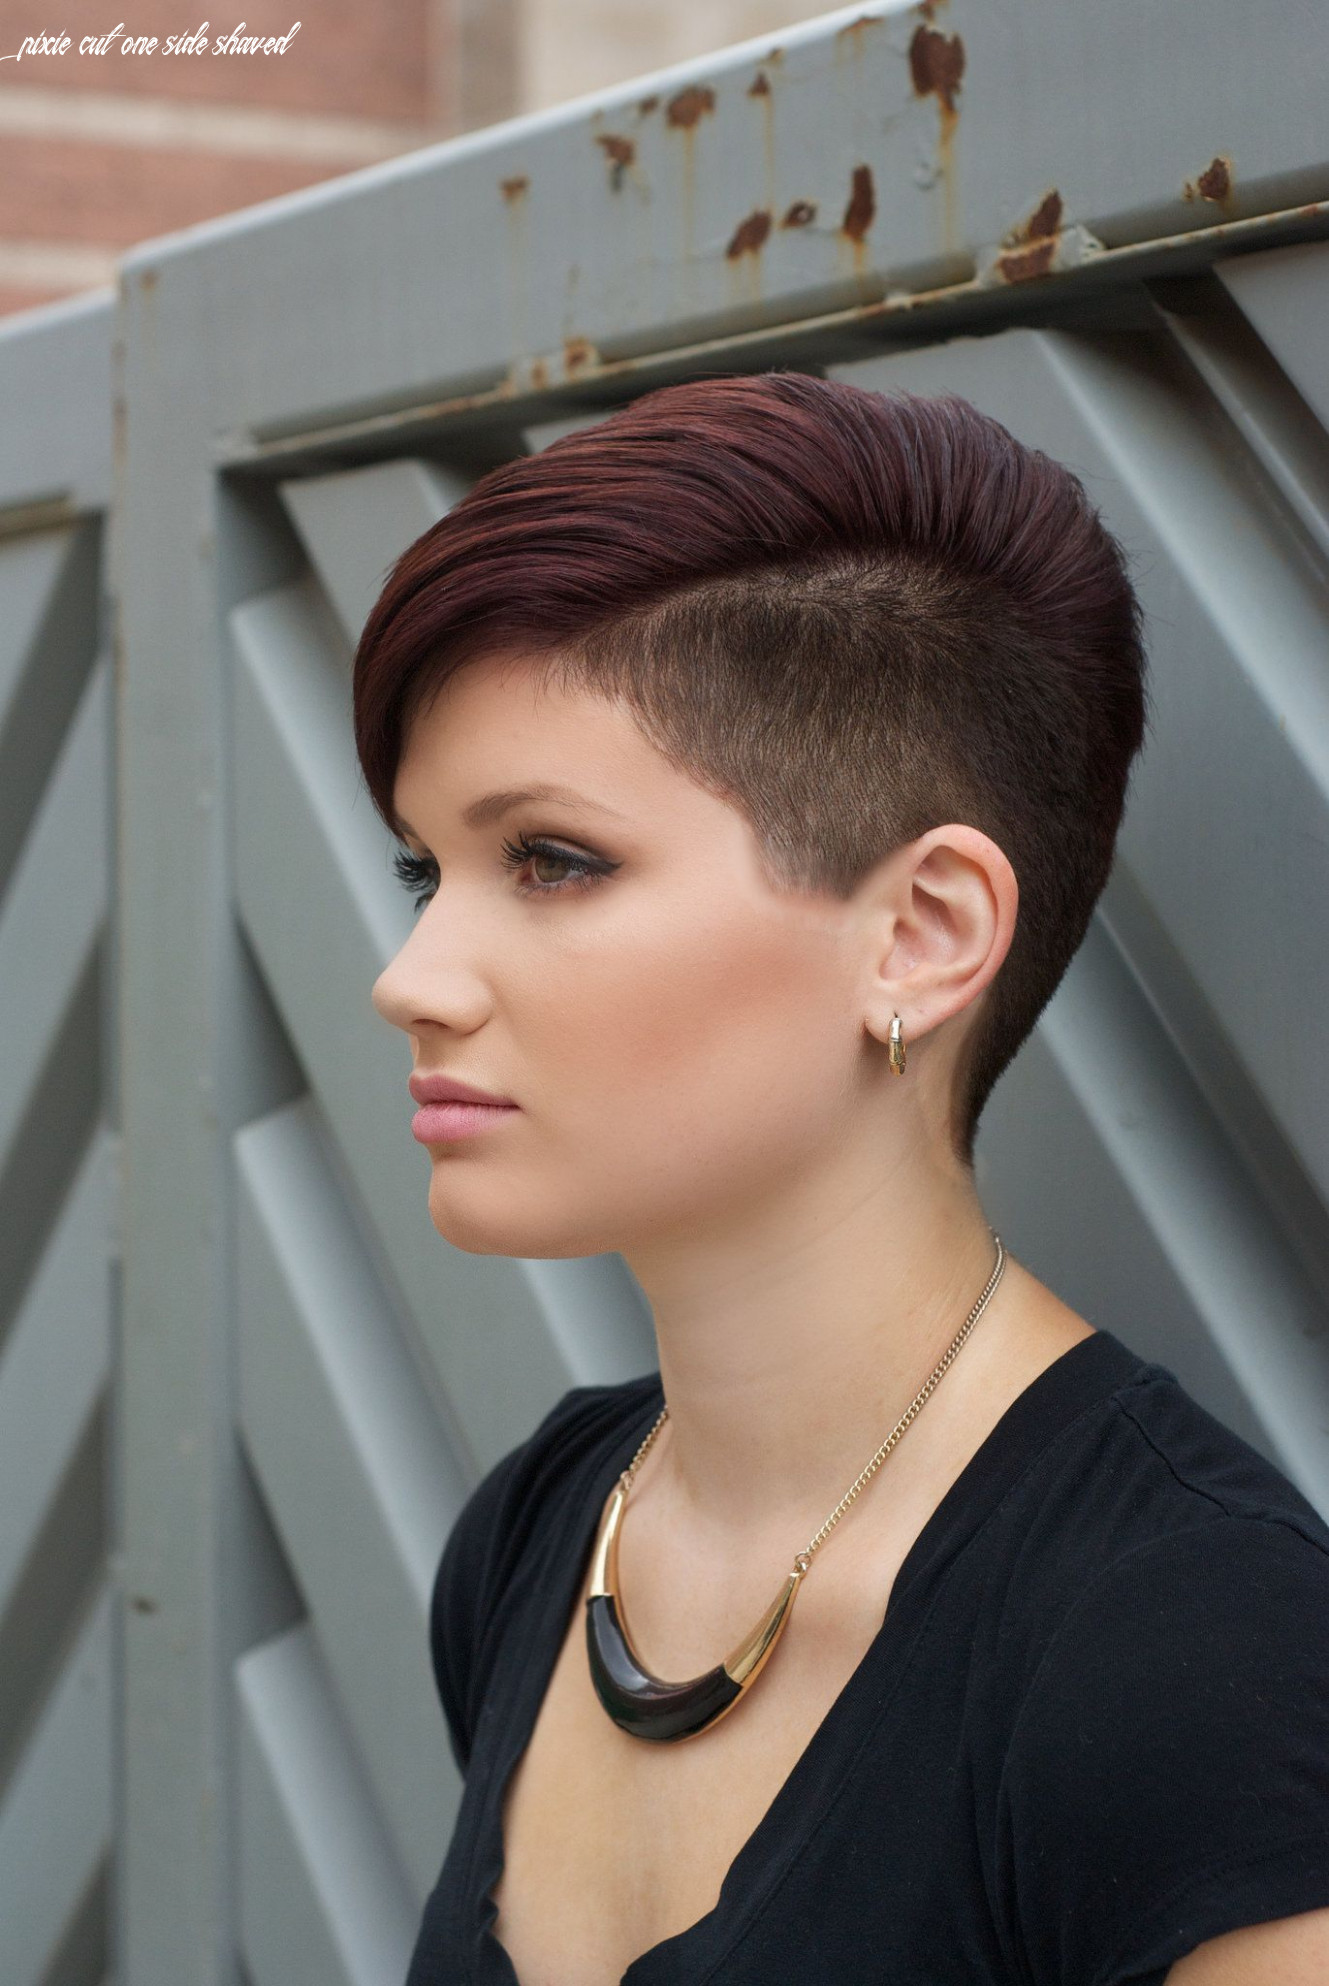 Pin on one side shaved head/half shaved/undercut pixie cut one side shaved